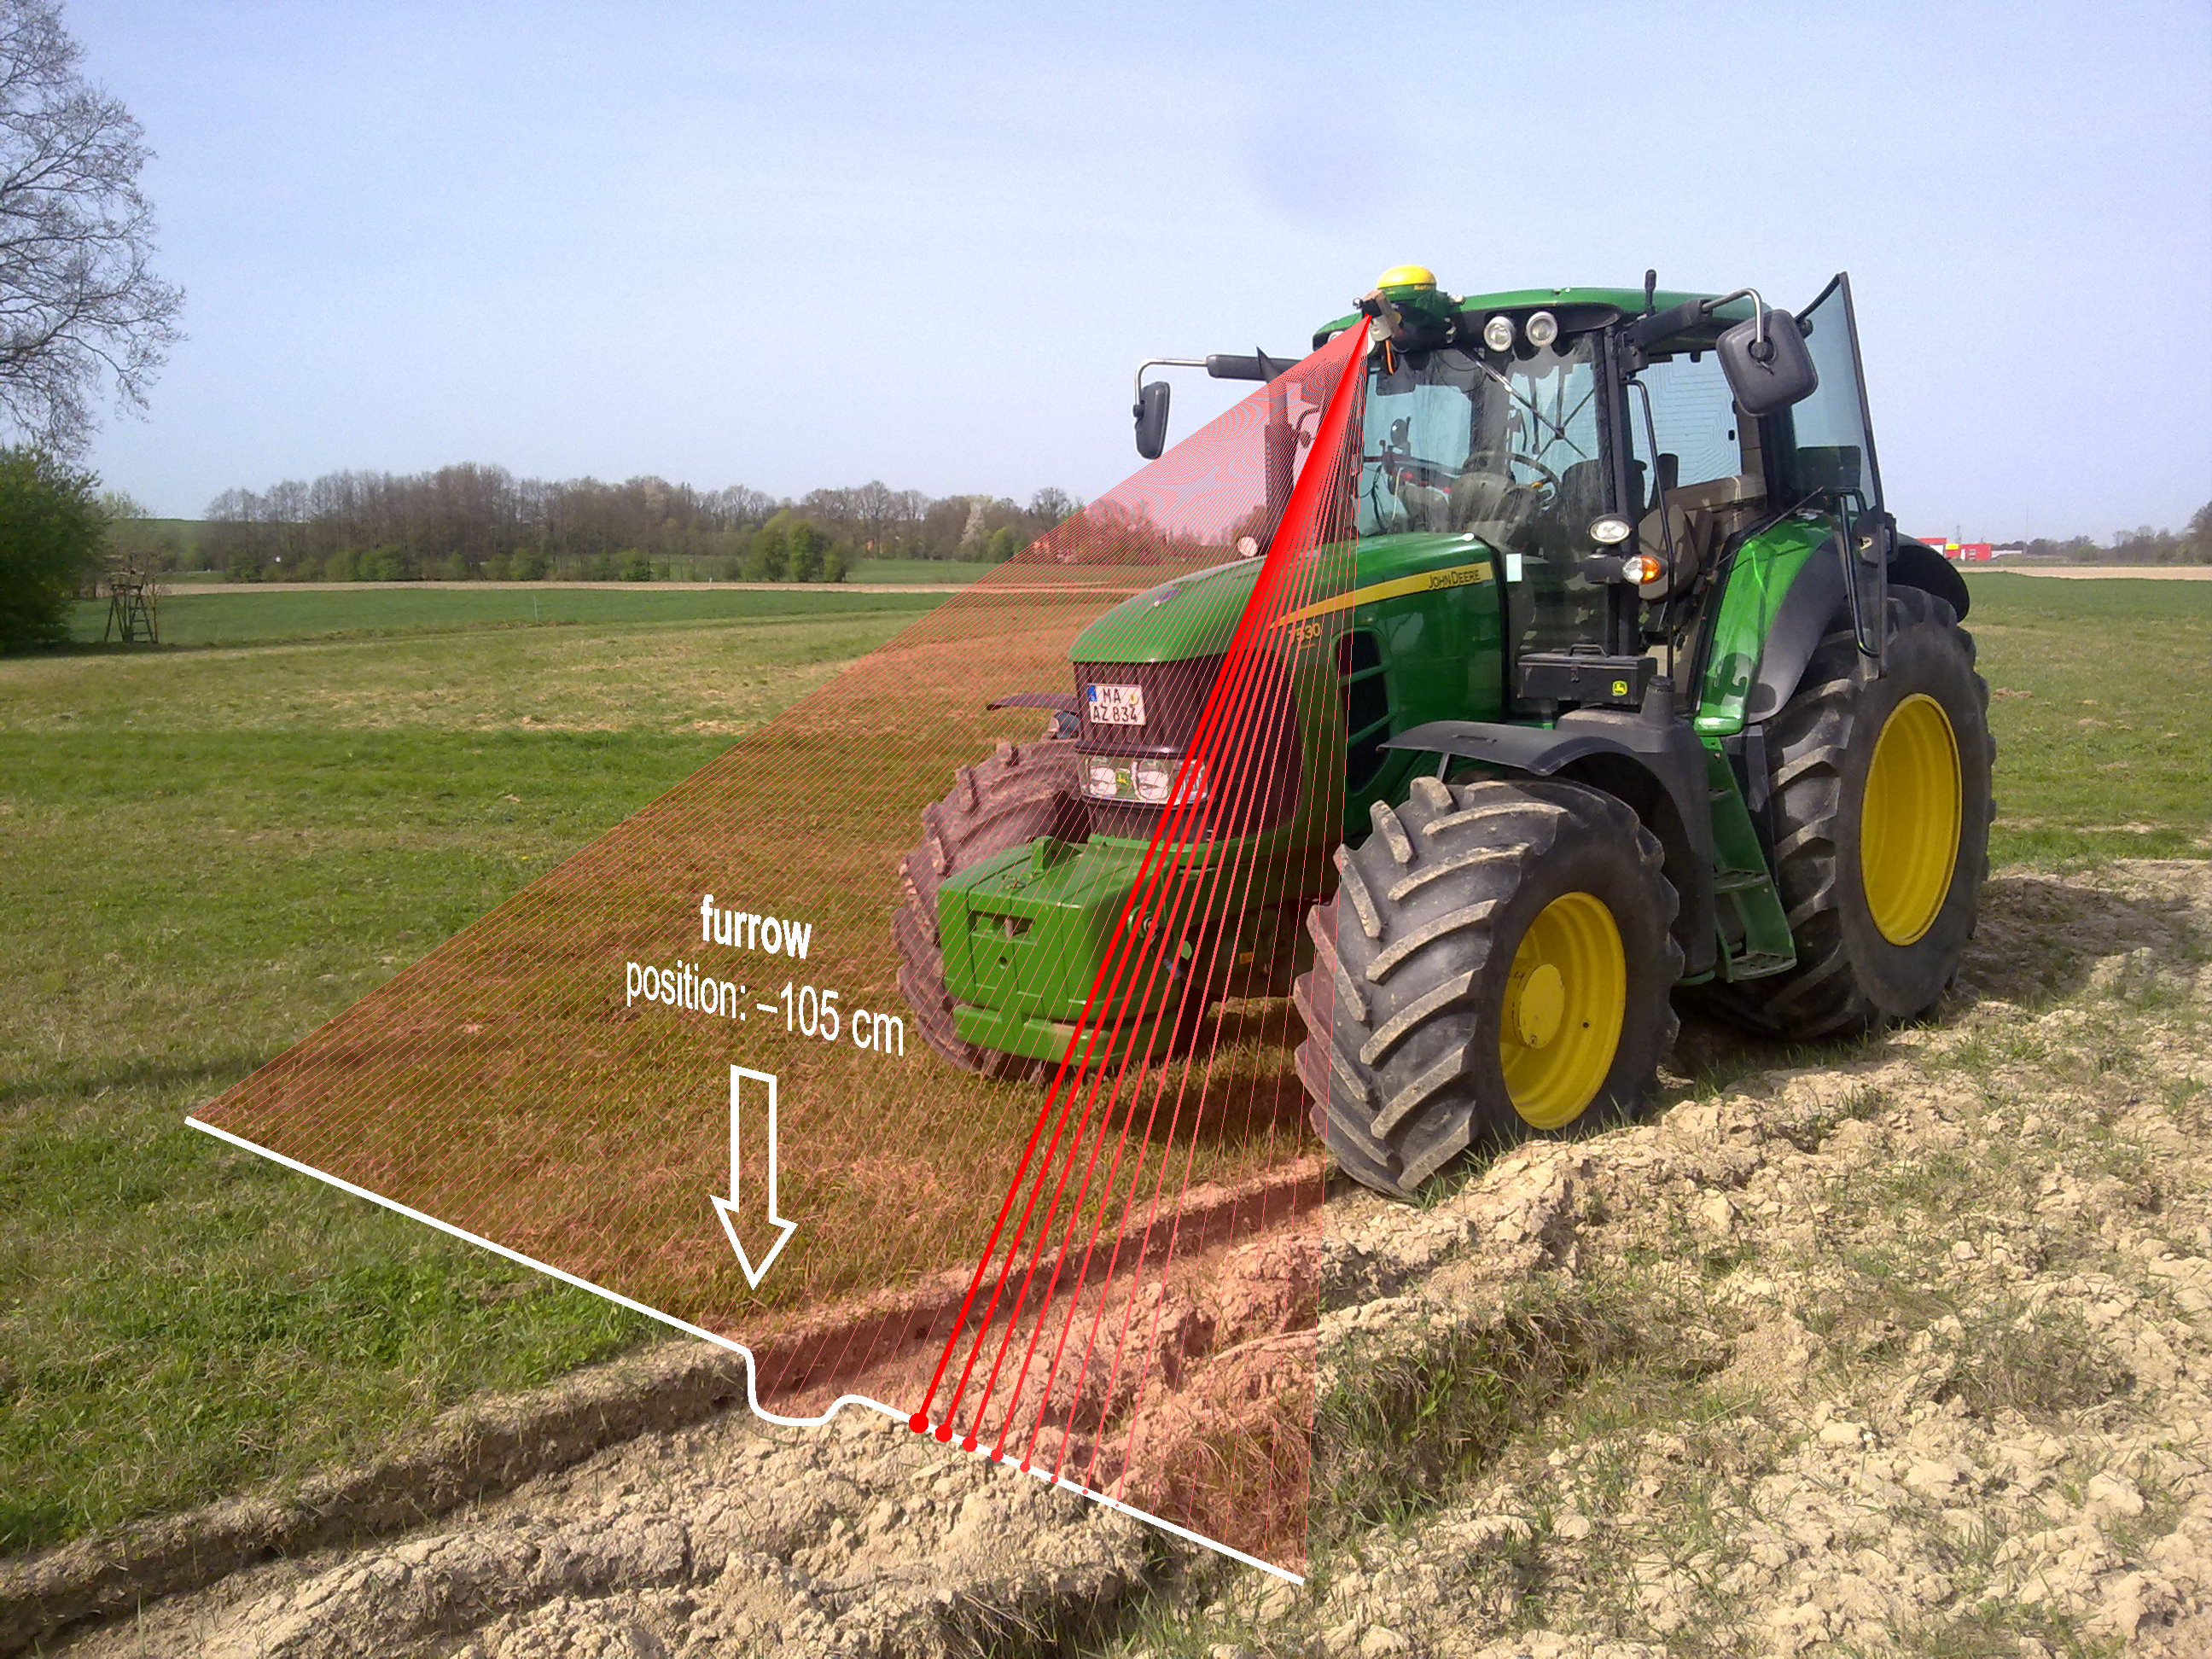 Driver Assistance System for Agricultural Vehicles